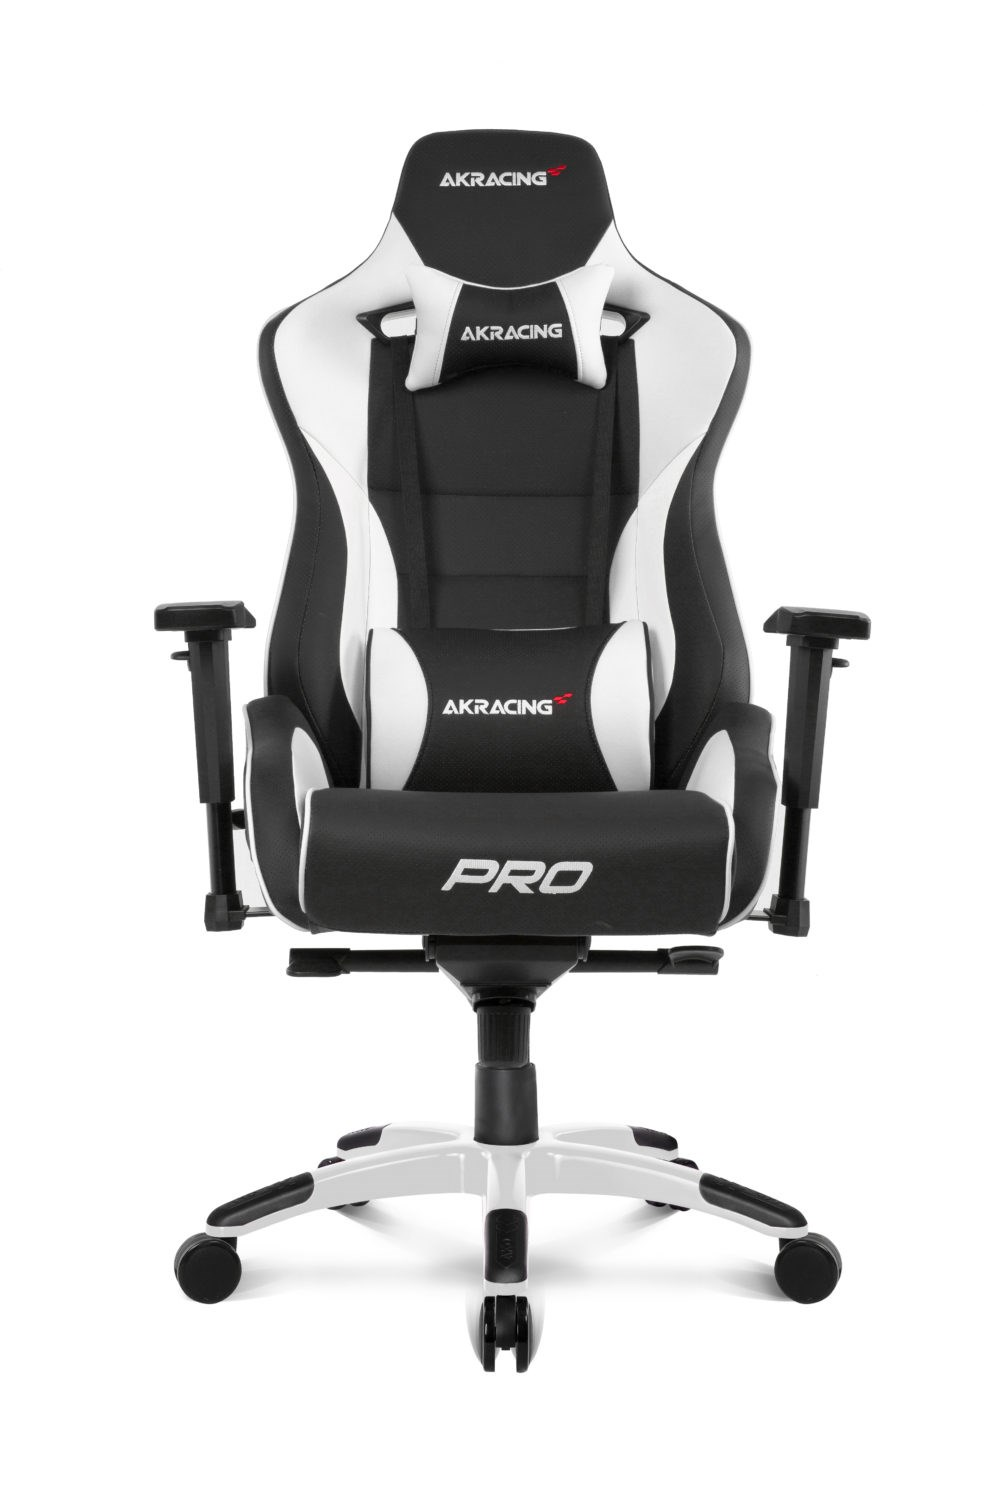 Fine Akracing Masters Series Pro Gaming Chair Black White Ak Pro Wt Uk Machost Co Dining Chair Design Ideas Machostcouk